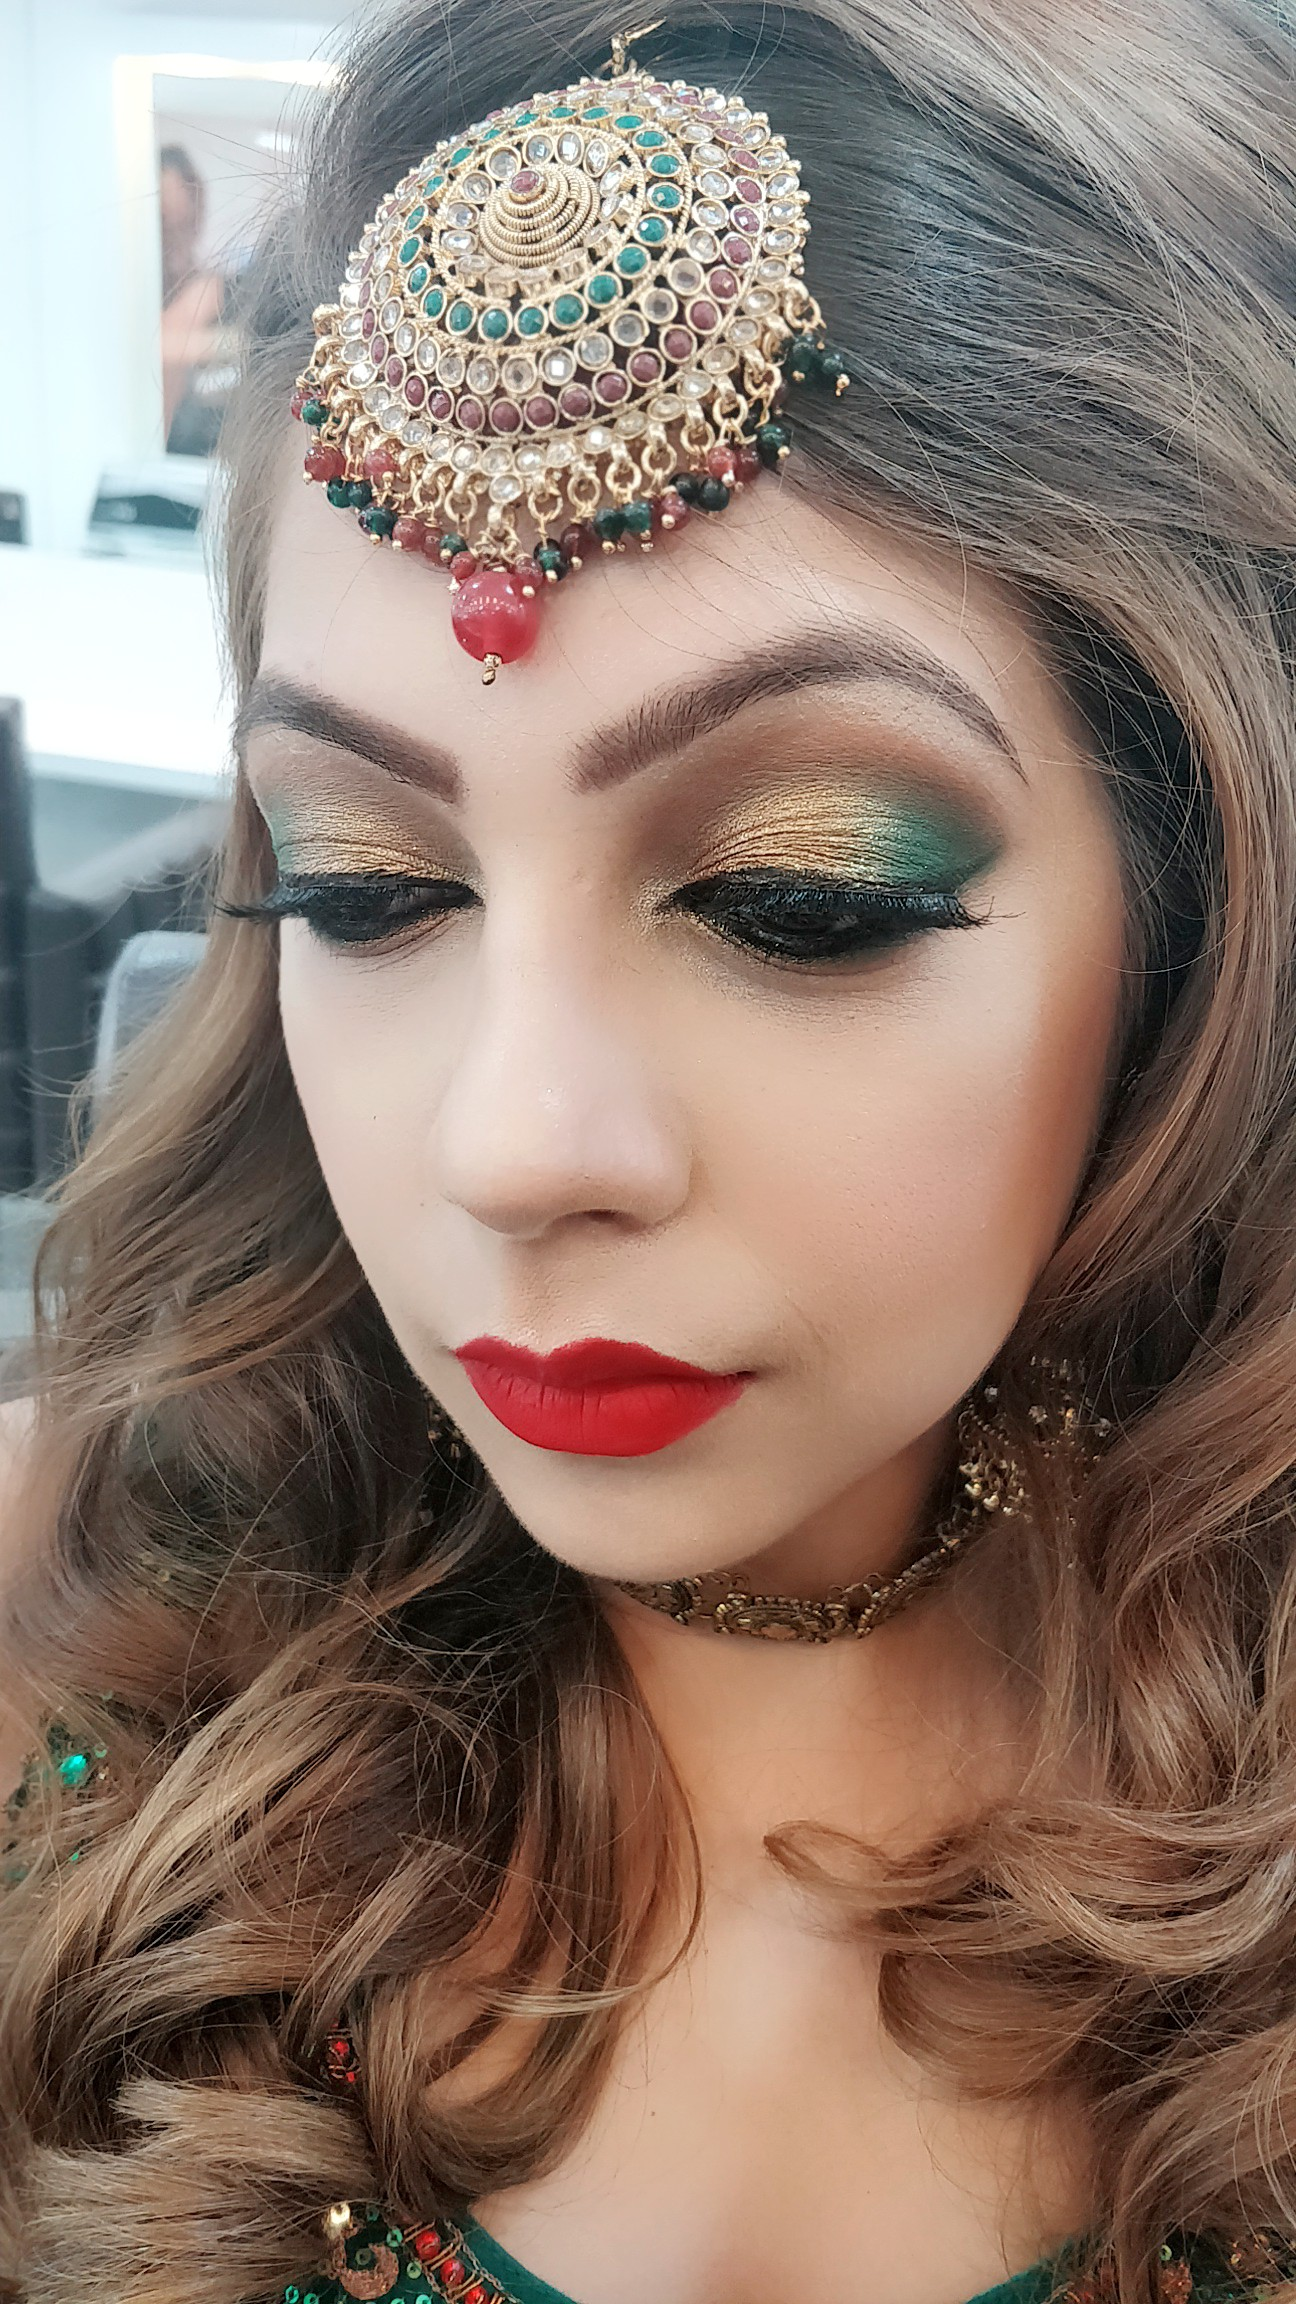 st-make-up-and-hair-styling-makeup-artist-delhi-ncr